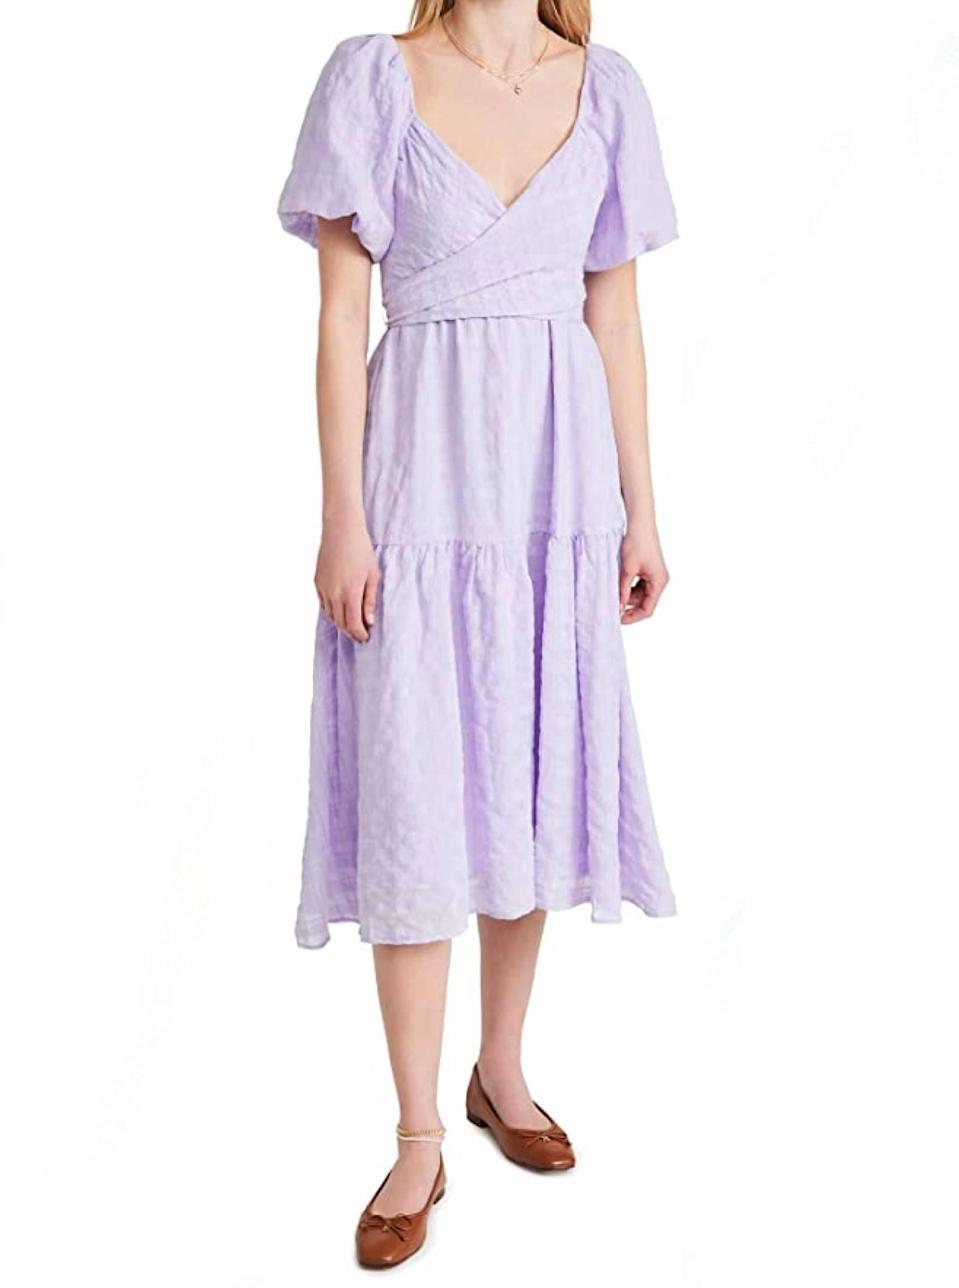 """Did we mention we like lavender and puff sleeves? Just making sure. $148, Amazon. <a href=""""https://www.amazon.com/ASTR-label-Womens-Sonnet-Lavender/dp/B08ZVMRKXM/ref="""" rel=""""nofollow noopener"""" target=""""_blank"""" data-ylk=""""slk:Get it now!"""" class=""""link rapid-noclick-resp"""">Get it now!</a>"""